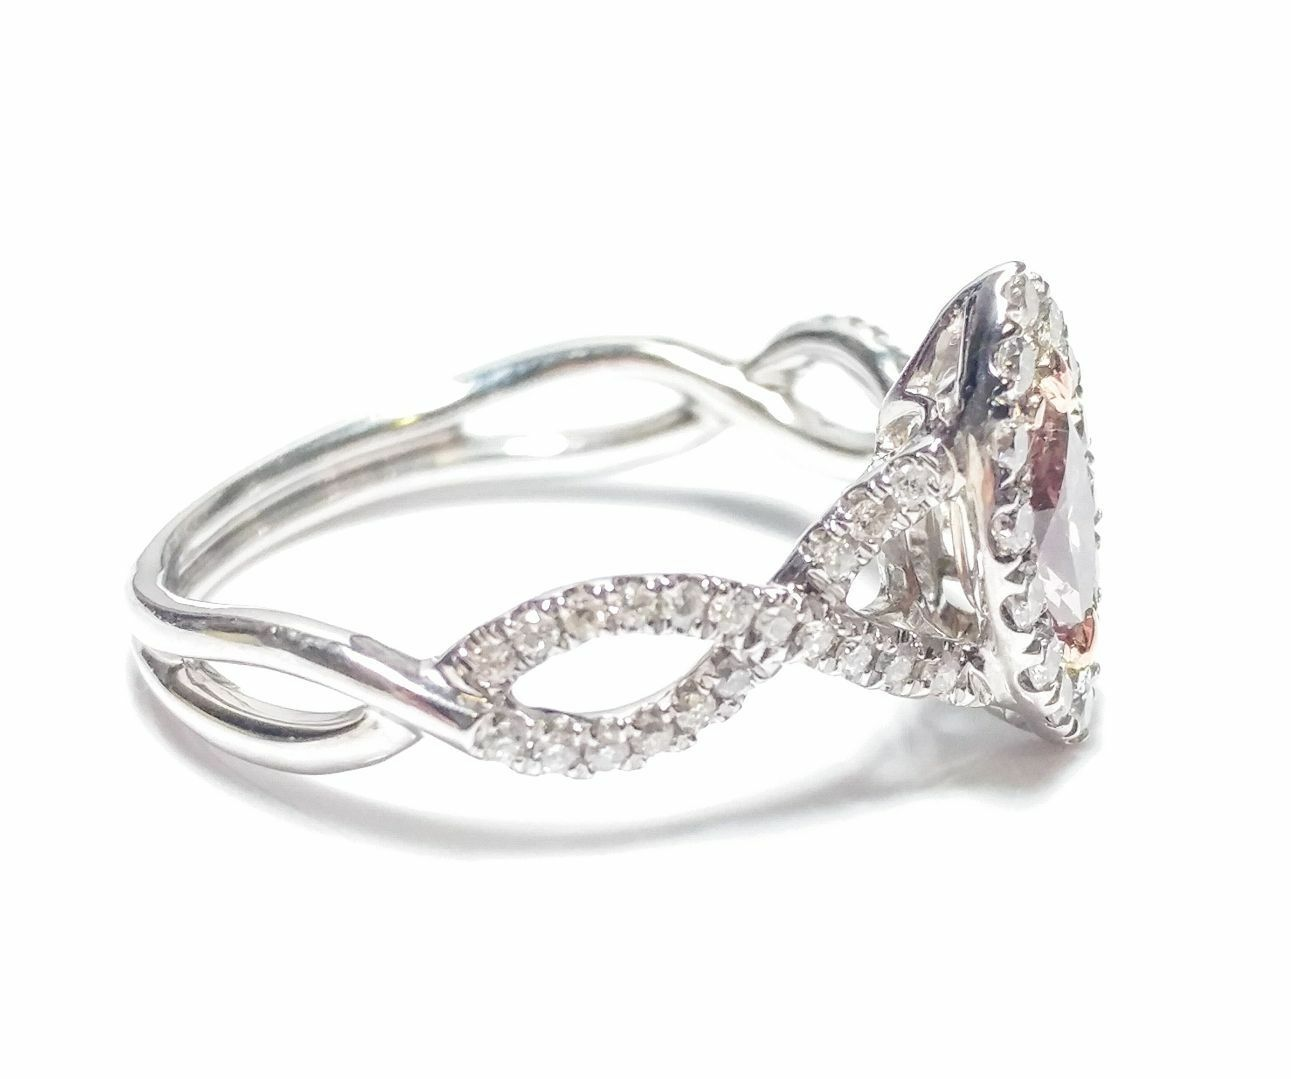 0.86ct Fancy Pink Diamond Engagement Ring GIA Marquise Hallo 18K White Gold Si1 2